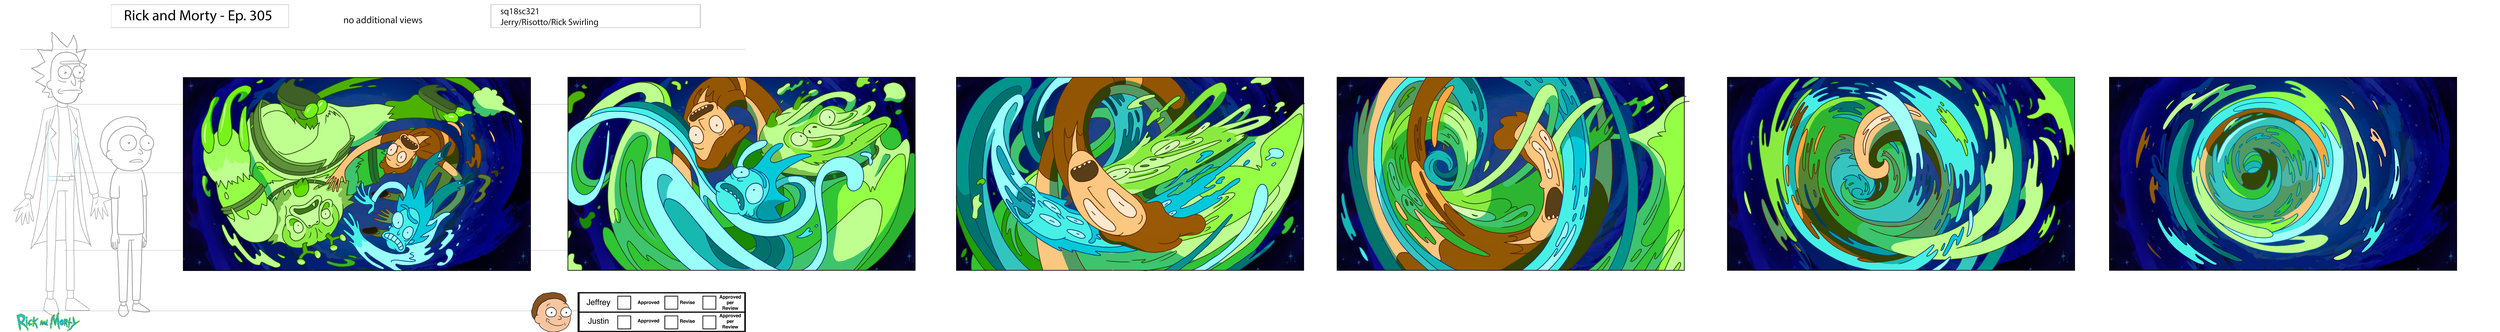 305_CH_sq18sc321_Jerry_Risotto_Rick_Swirling_Color_V1_CB.jpg